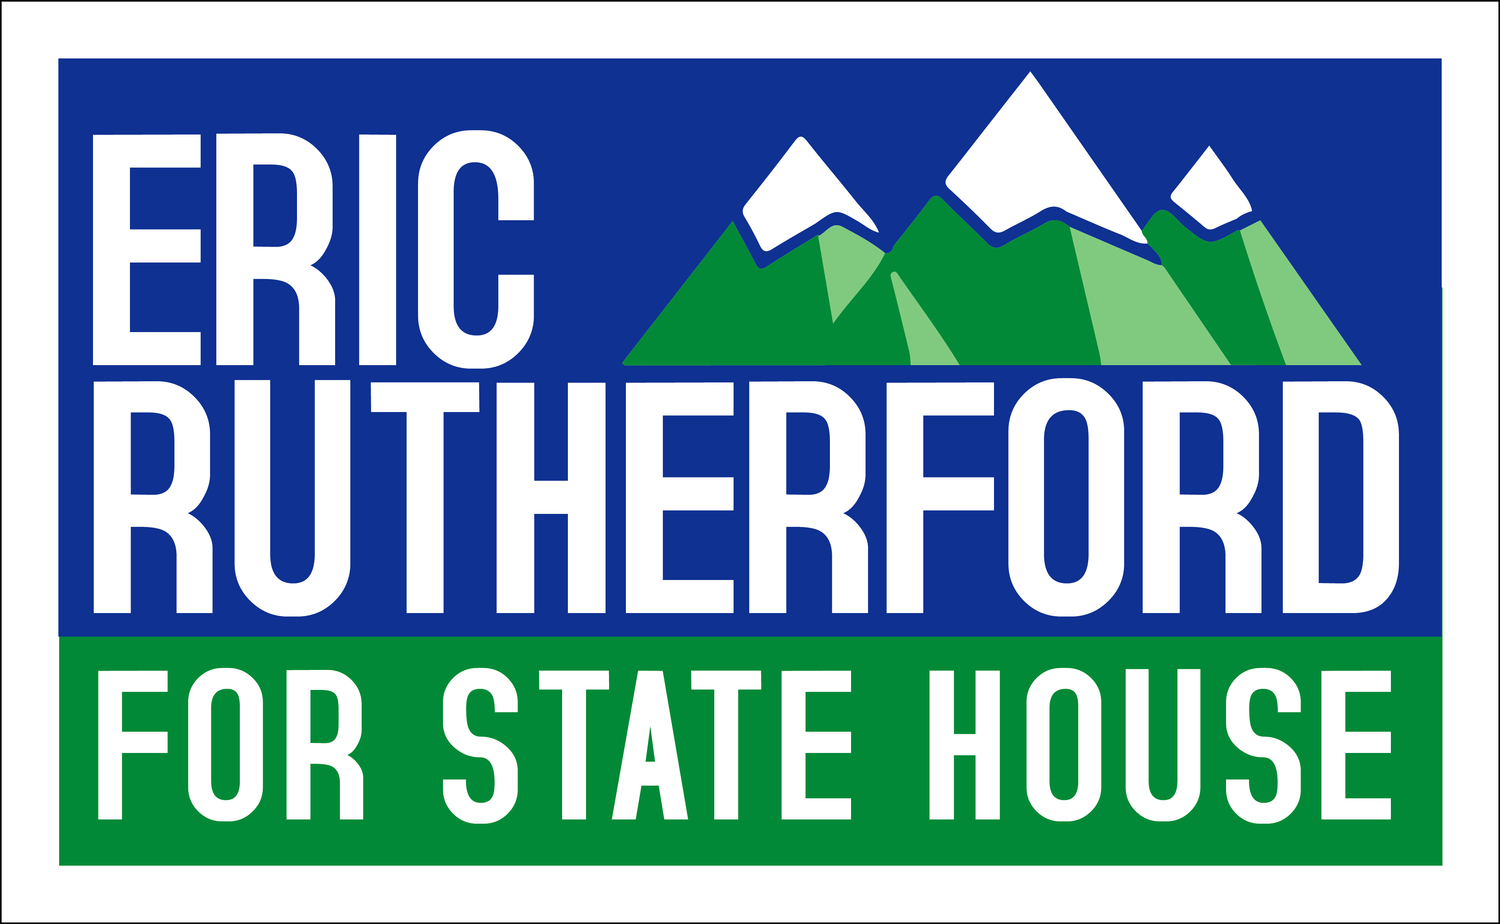 Eric Rutherford For State House District 33